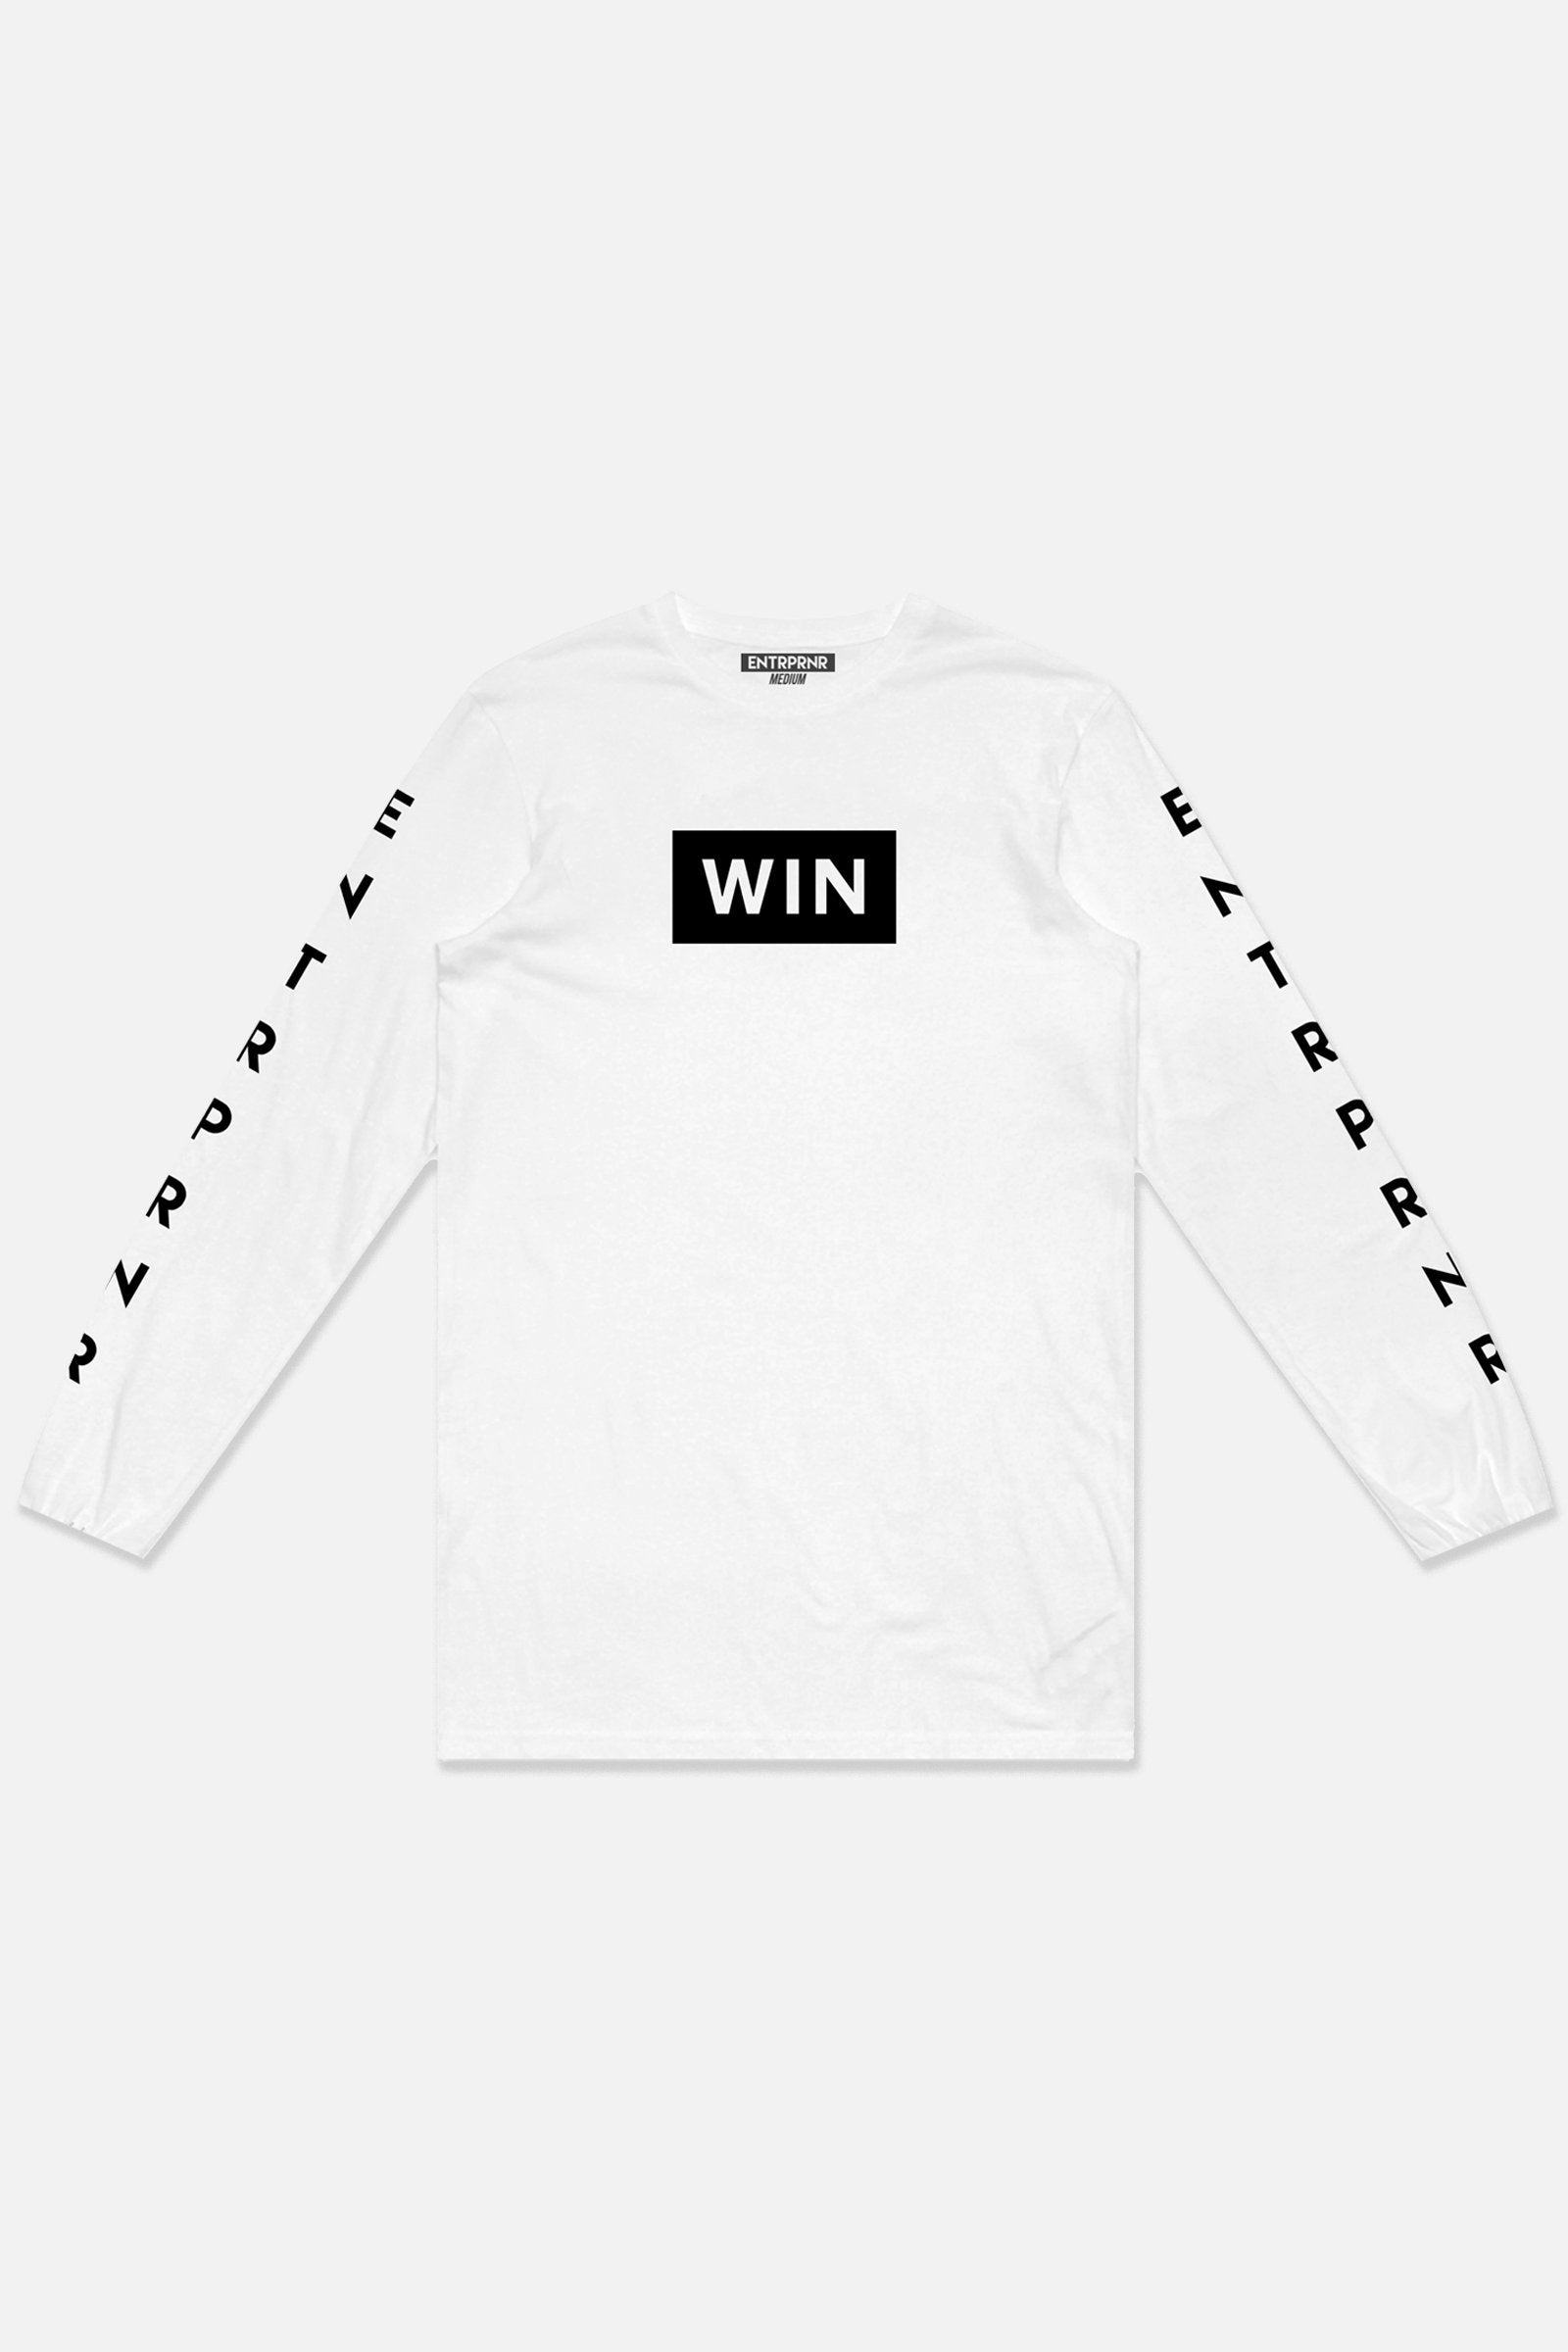 ENTRPRNR WIN Long Sleeve - White - ENTRPRNR® | The Entrepreneur's Clothing Brand. | Stagnancy is the Enemy. Action is King.